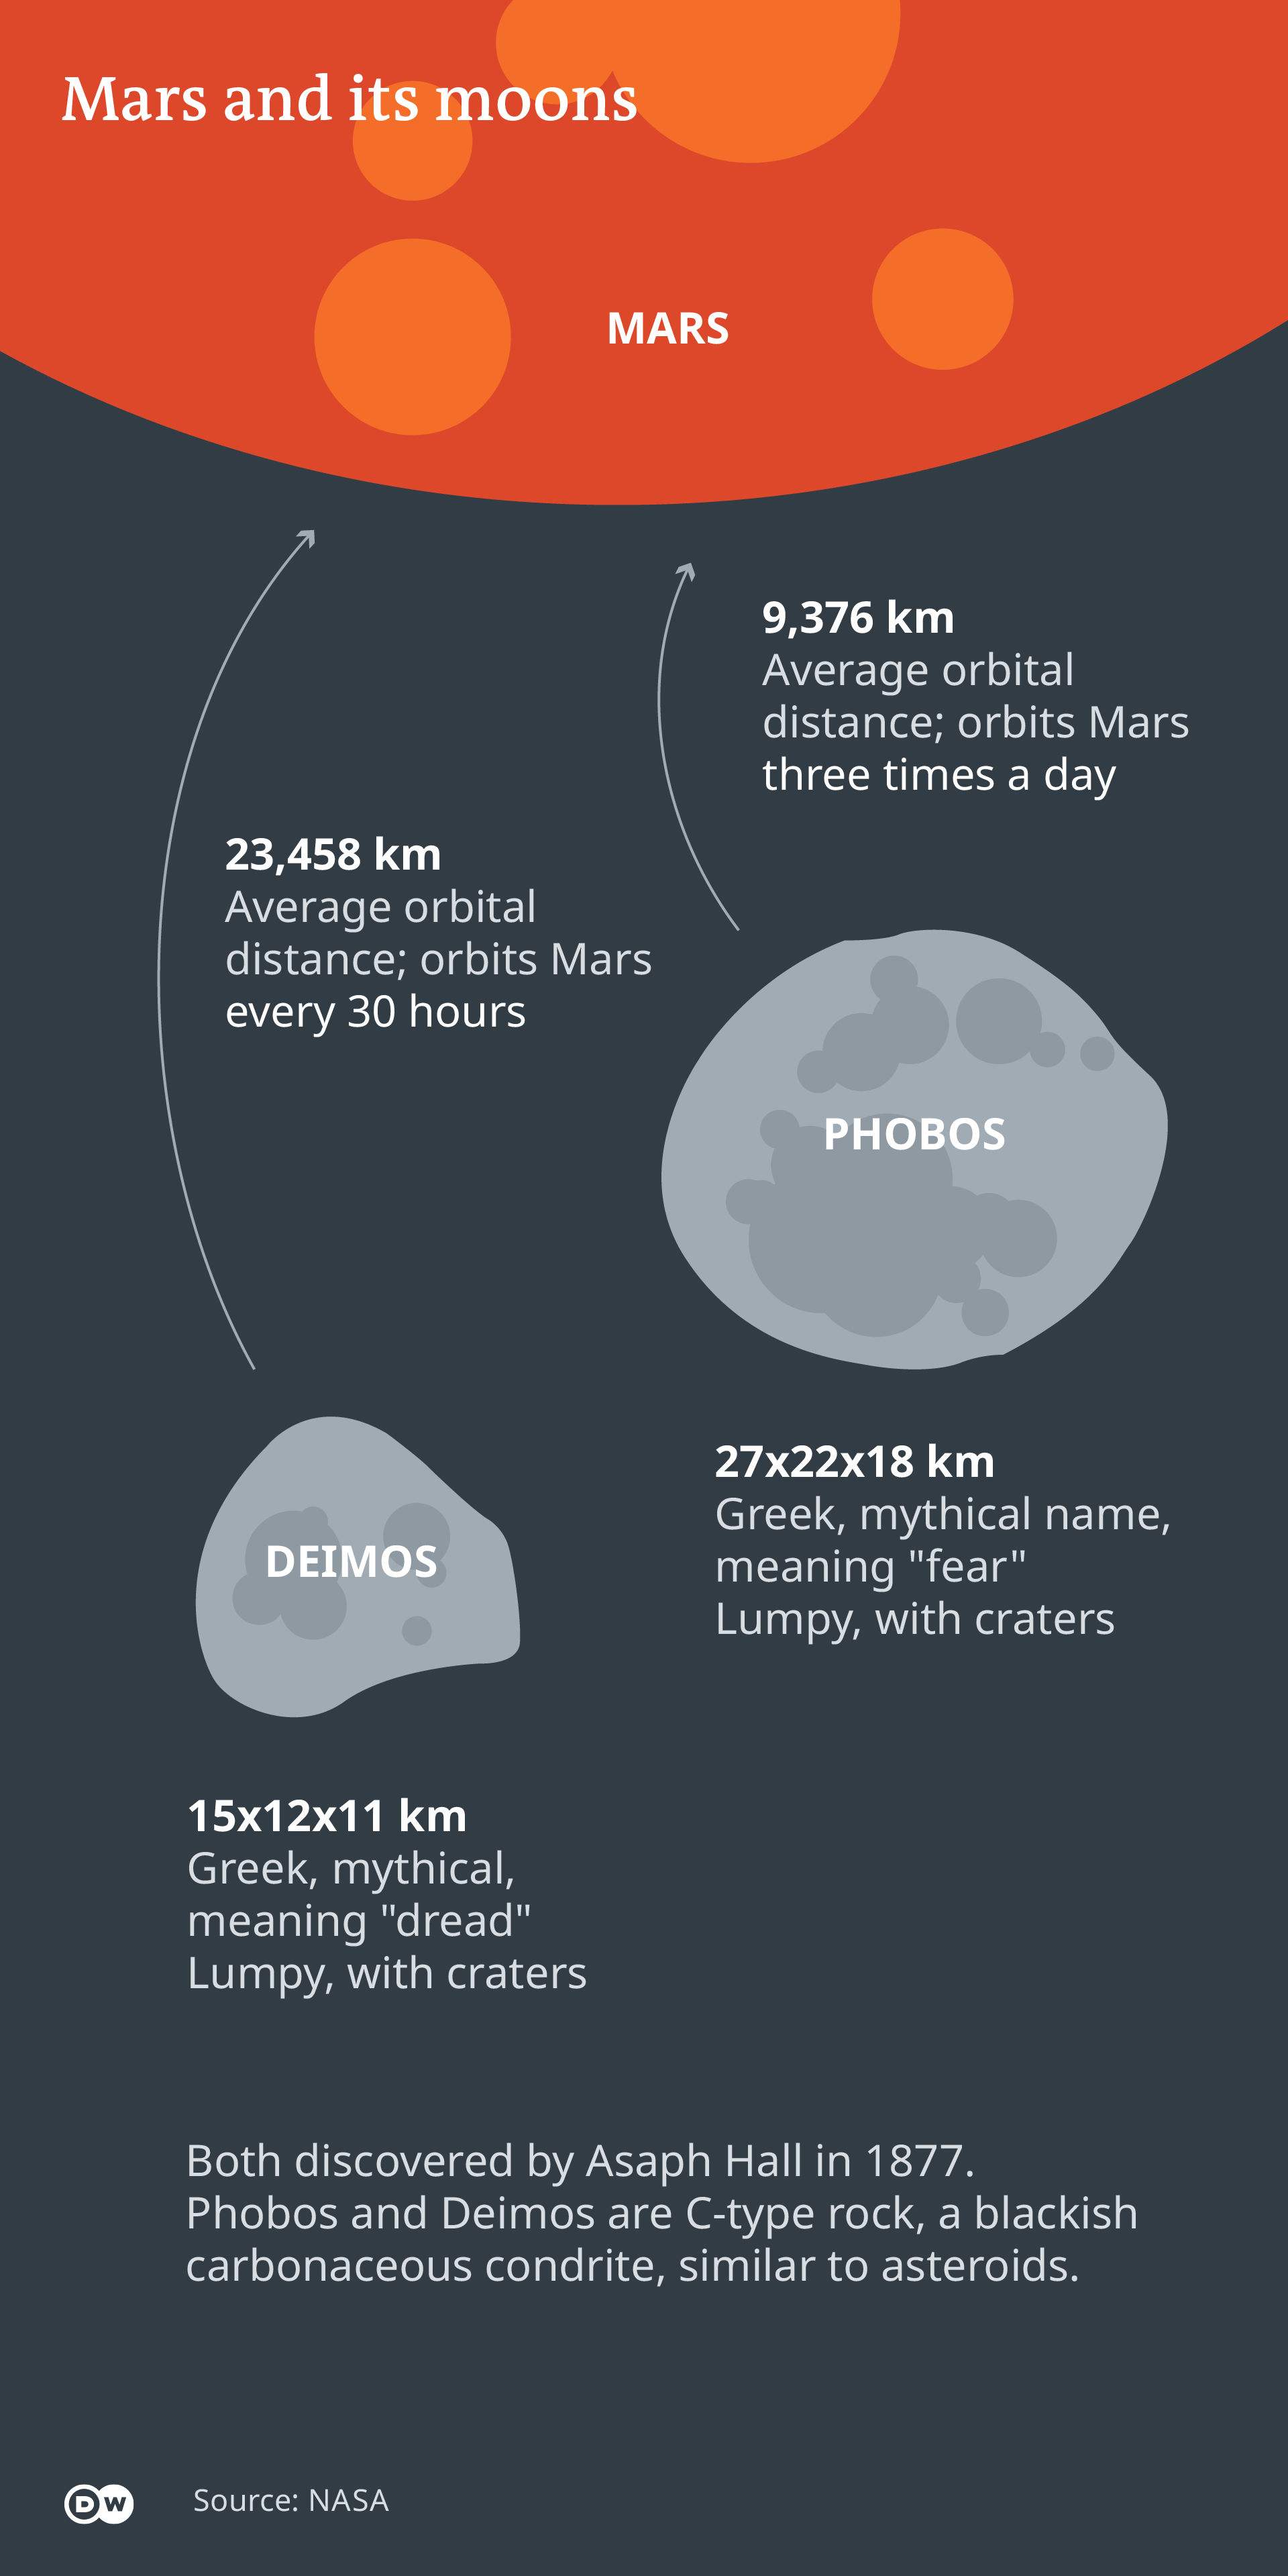 Infographic illustrating the moons of Mars, with basic facts such as their average orbital distance to the planet. Source: NASA (DW)